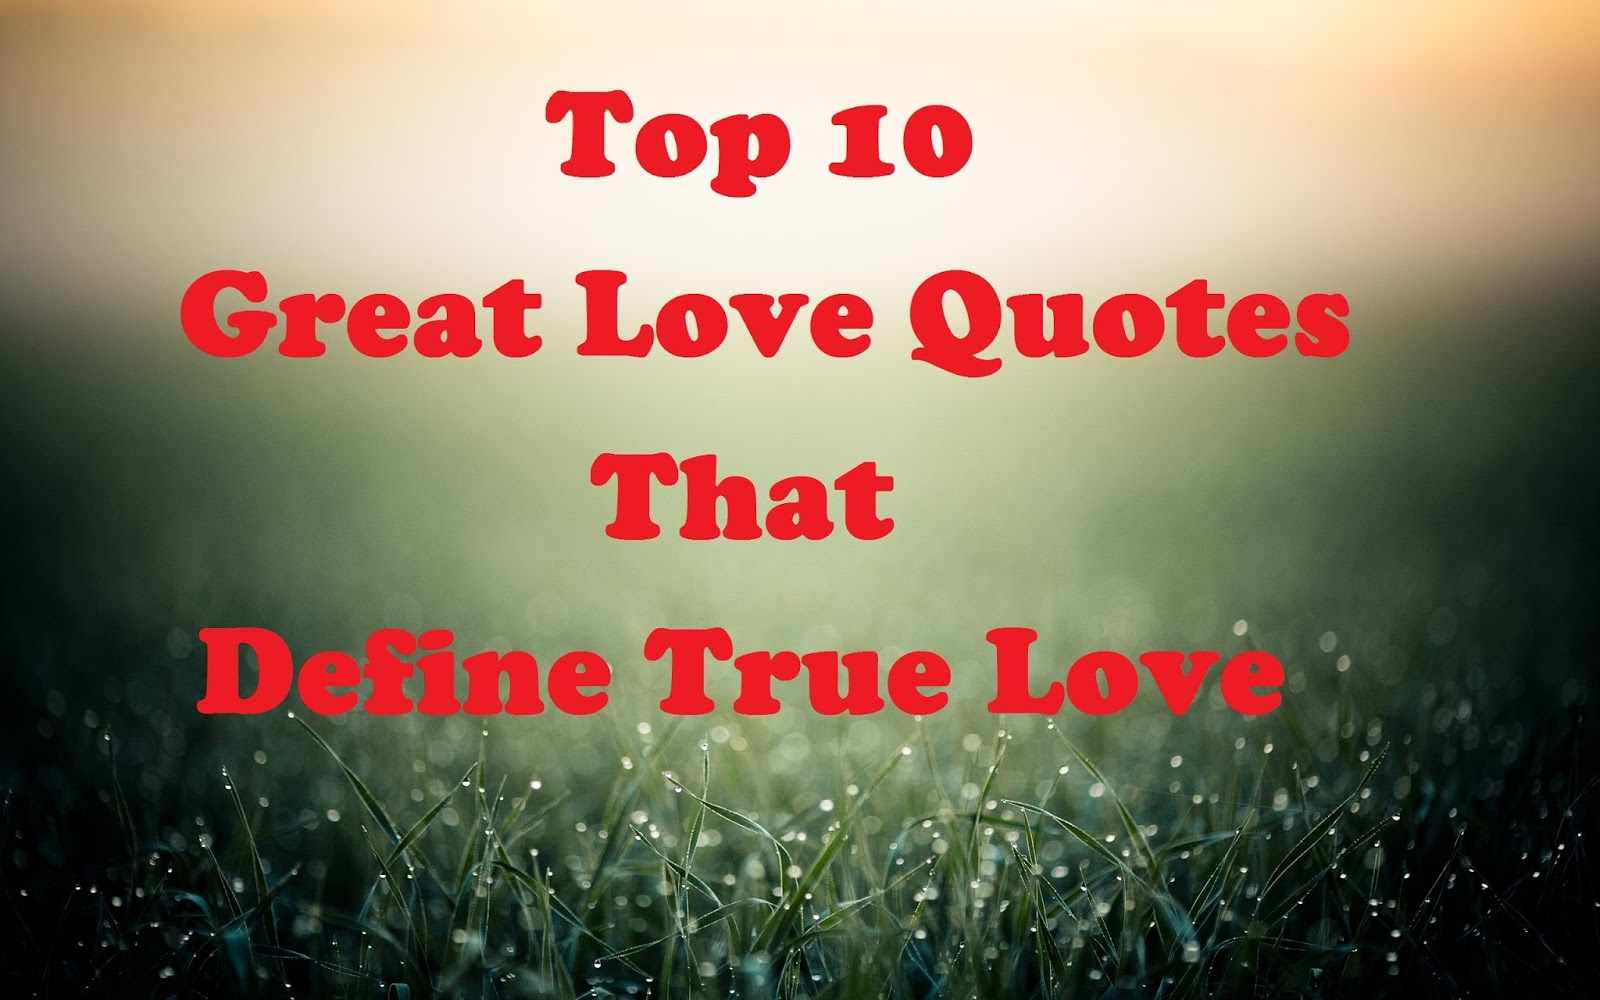 Great Love Quotes Glamorous Best 10 Great Love Quotes « Sarkari Patra  Sarkari Job Free Job